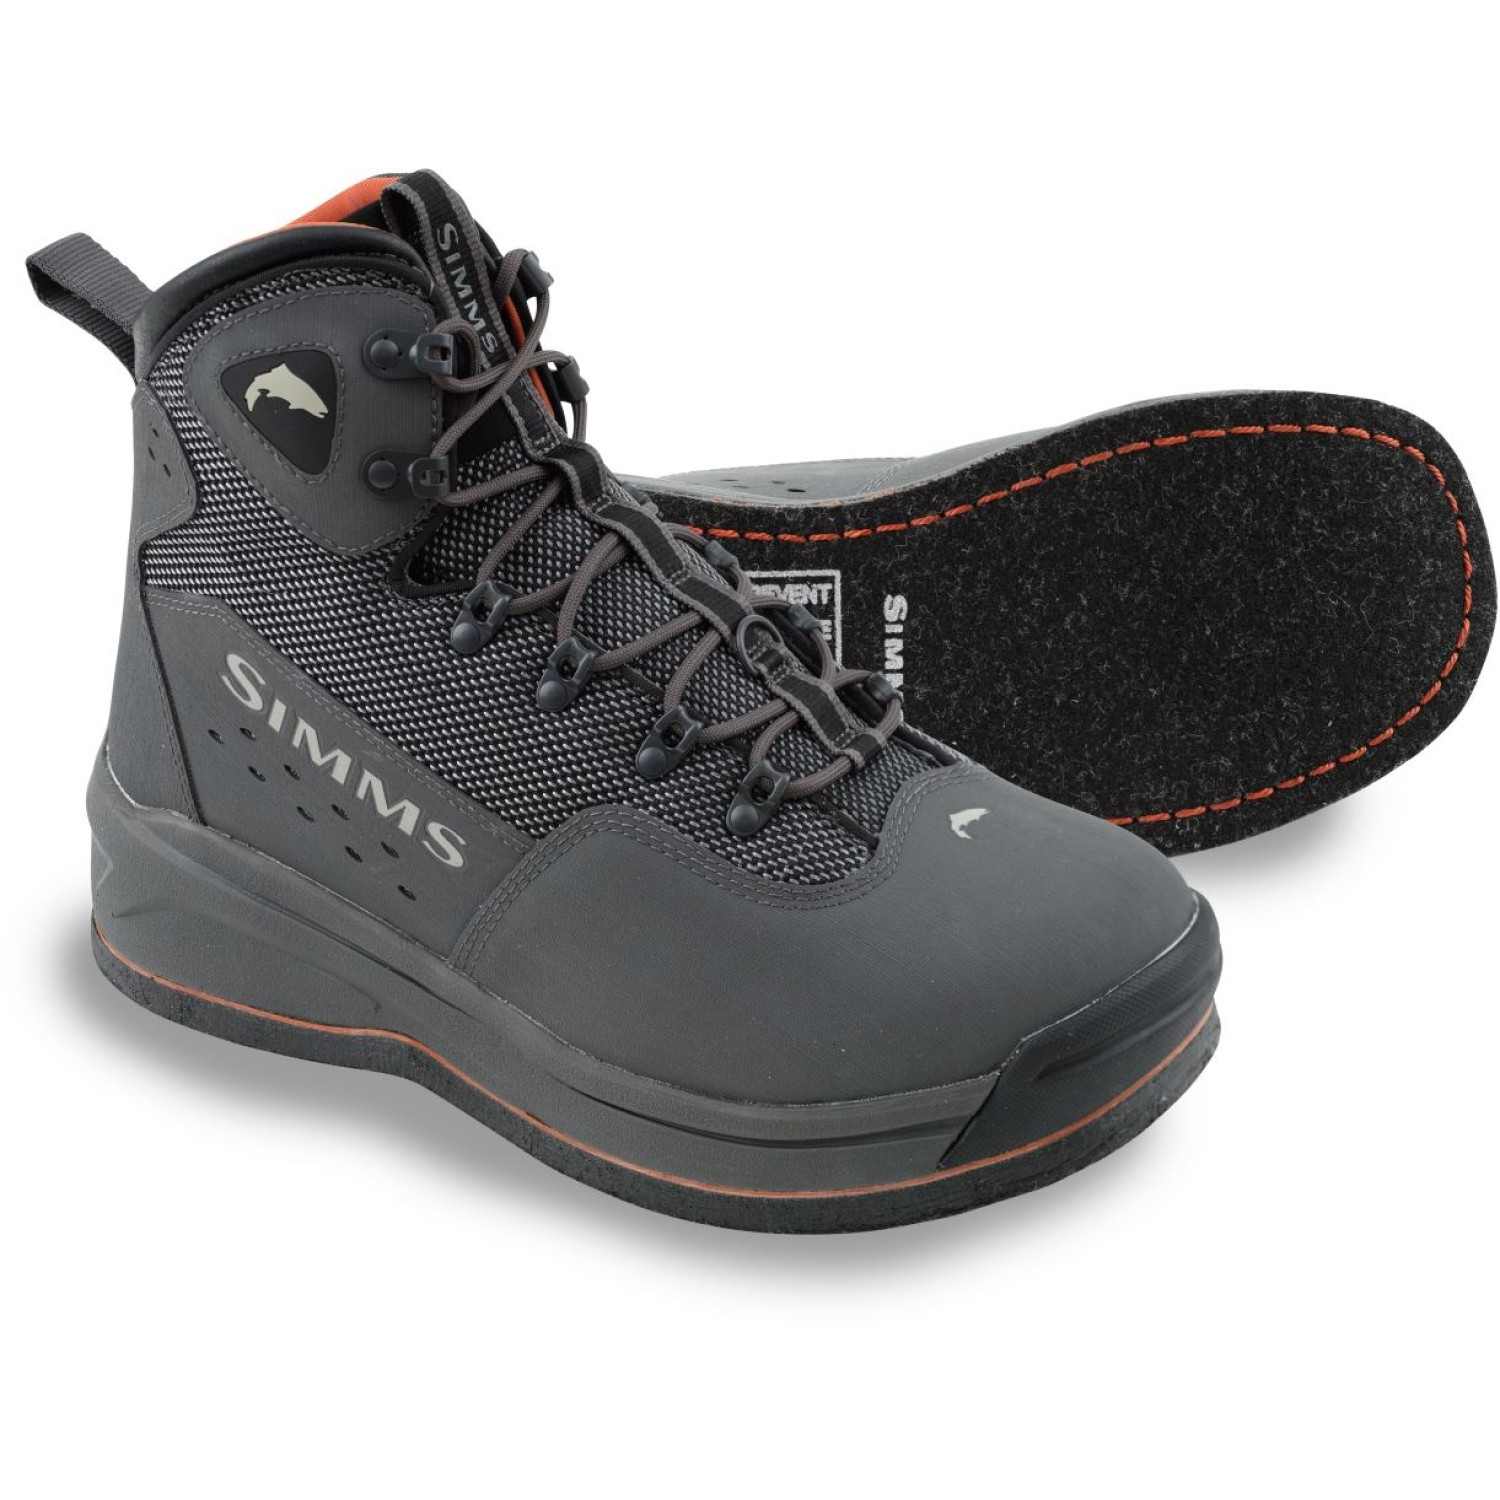 Simms Headwaters Boot Felt Coal